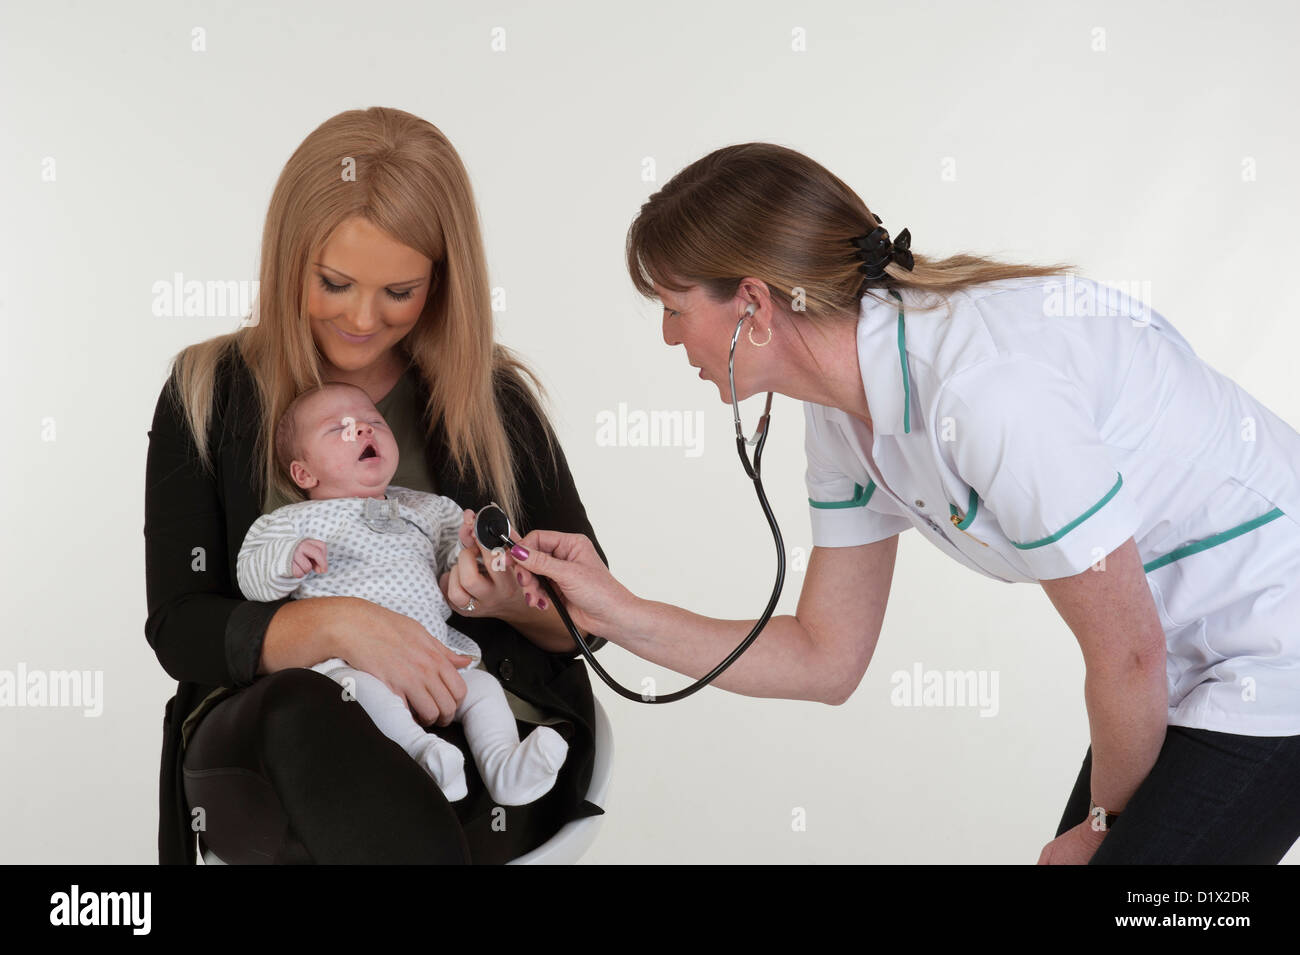 new mother holding her baby girl during postnatal medical examination with a nurse stock image